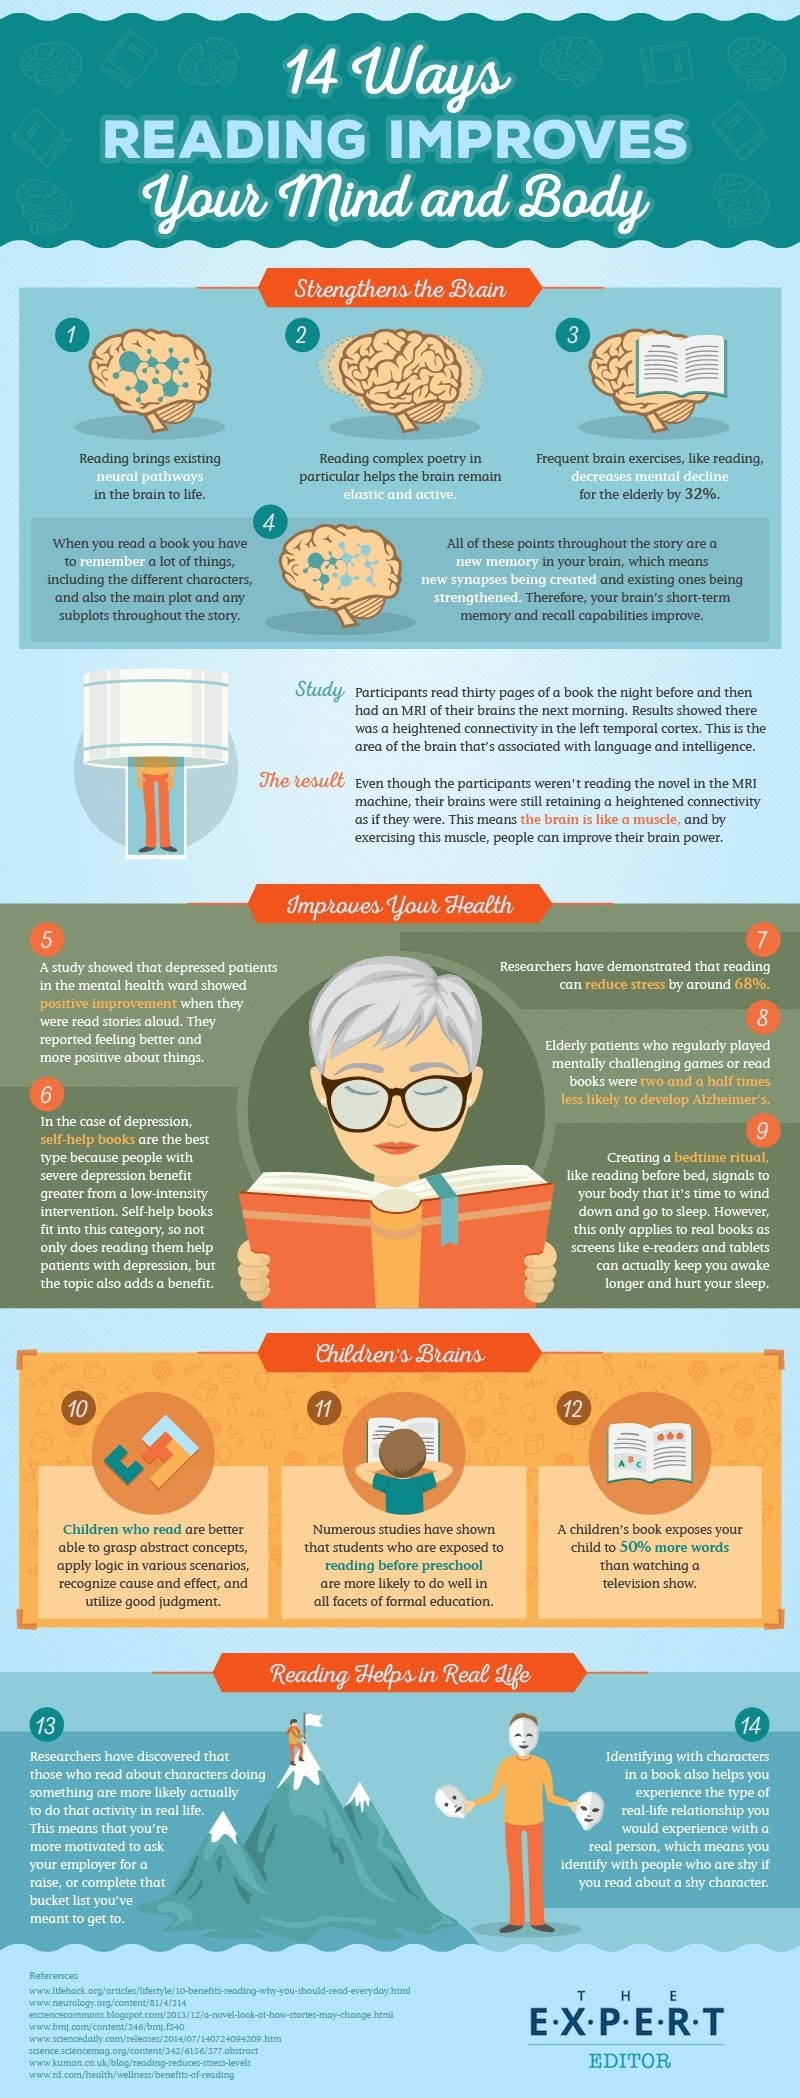 14 Ways Reading Improves Your Mind and Body - #Infographic